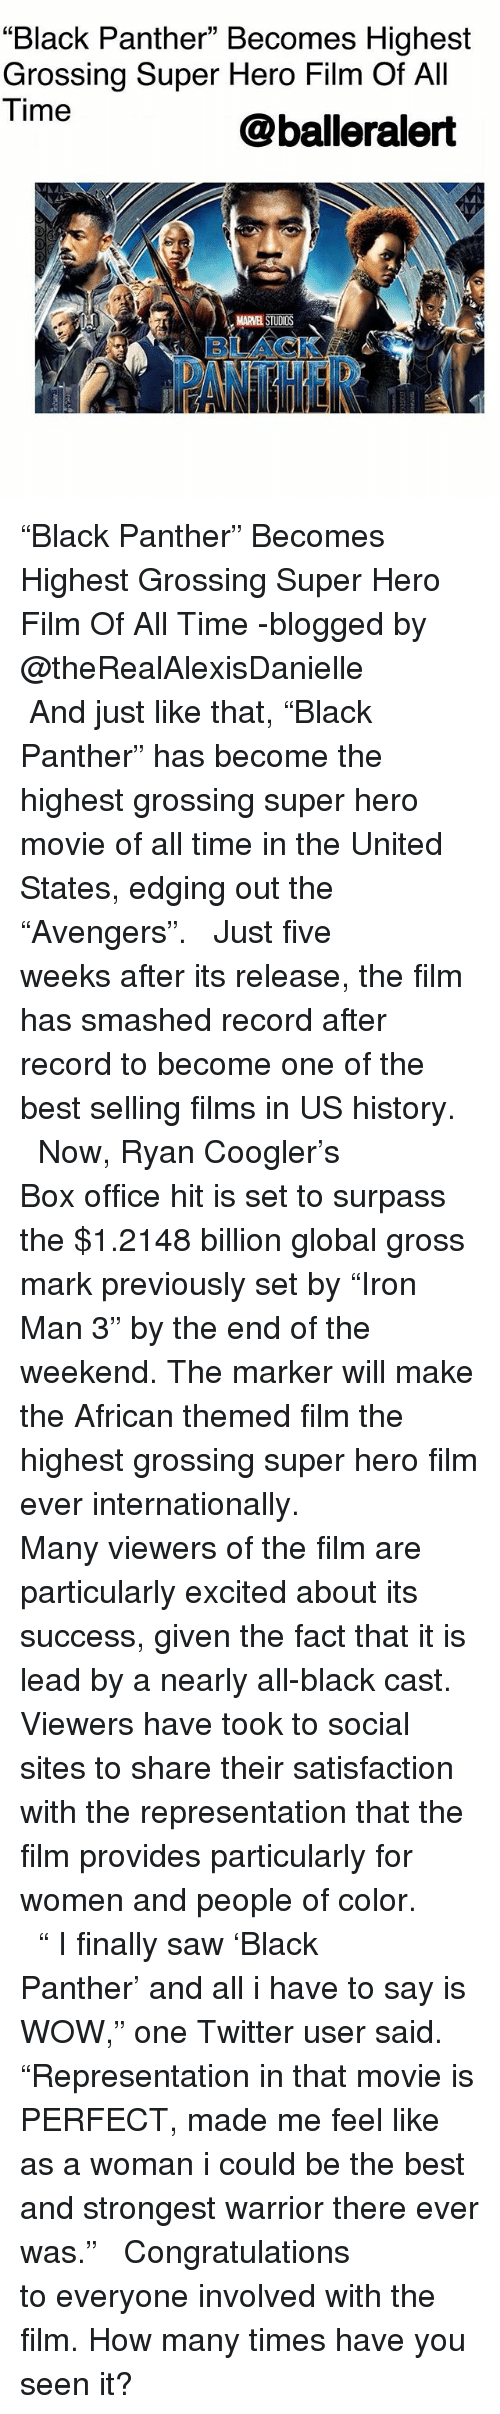 """How Many Times, Memes, and Saw: """"Black Panther"""" Becomes Highest  Grossing Super Hero Film Of All  Time  @balleralert  MARVEL STUDIOS  BLACKA.  ATHER """"Black Panther"""" Becomes Highest Grossing Super Hero Film Of All Time -blogged by @theRealAlexisDanielle ⠀⠀⠀⠀⠀⠀⠀ ⠀⠀⠀⠀⠀⠀⠀ And just like that, """"Black Panther"""" has become the highest grossing super hero movie of all time in the United States, edging out the """"Avengers"""". ⠀⠀⠀⠀⠀⠀⠀ ⠀⠀⠀⠀⠀⠀⠀ Just five weeks after its release, the film has smashed record after record to become one of the best selling films in US history. ⠀⠀⠀⠀⠀⠀⠀ ⠀⠀⠀⠀⠀⠀⠀ Now, Ryan Coogler's Box office hit is set to surpass the $1.2148 billion global gross mark previously set by """"Iron Man 3"""" by the end of the weekend. The marker will make the African themed film the highest grossing super hero film ever internationally. ⠀⠀⠀⠀⠀⠀⠀ ⠀⠀⠀⠀⠀⠀⠀ Many viewers of the film are particularly excited about its success, given the fact that it is lead by a nearly all-black cast. Viewers have took to social sites to share their satisfaction with the representation that the film provides particularly for women and people of color. ⠀⠀⠀⠀⠀⠀⠀ ⠀⠀⠀⠀⠀⠀⠀ """" I finally saw 'Black Panther' and all i have to say is WOW,"""" one Twitter user said. """"Representation in that movie is PERFECT, made me feel like as a woman i could be the best and strongest warrior there ever was."""" ⠀⠀⠀⠀⠀⠀⠀ ⠀⠀⠀⠀⠀⠀⠀ Congratulations to everyone involved with the film. How many times have you seen it?"""